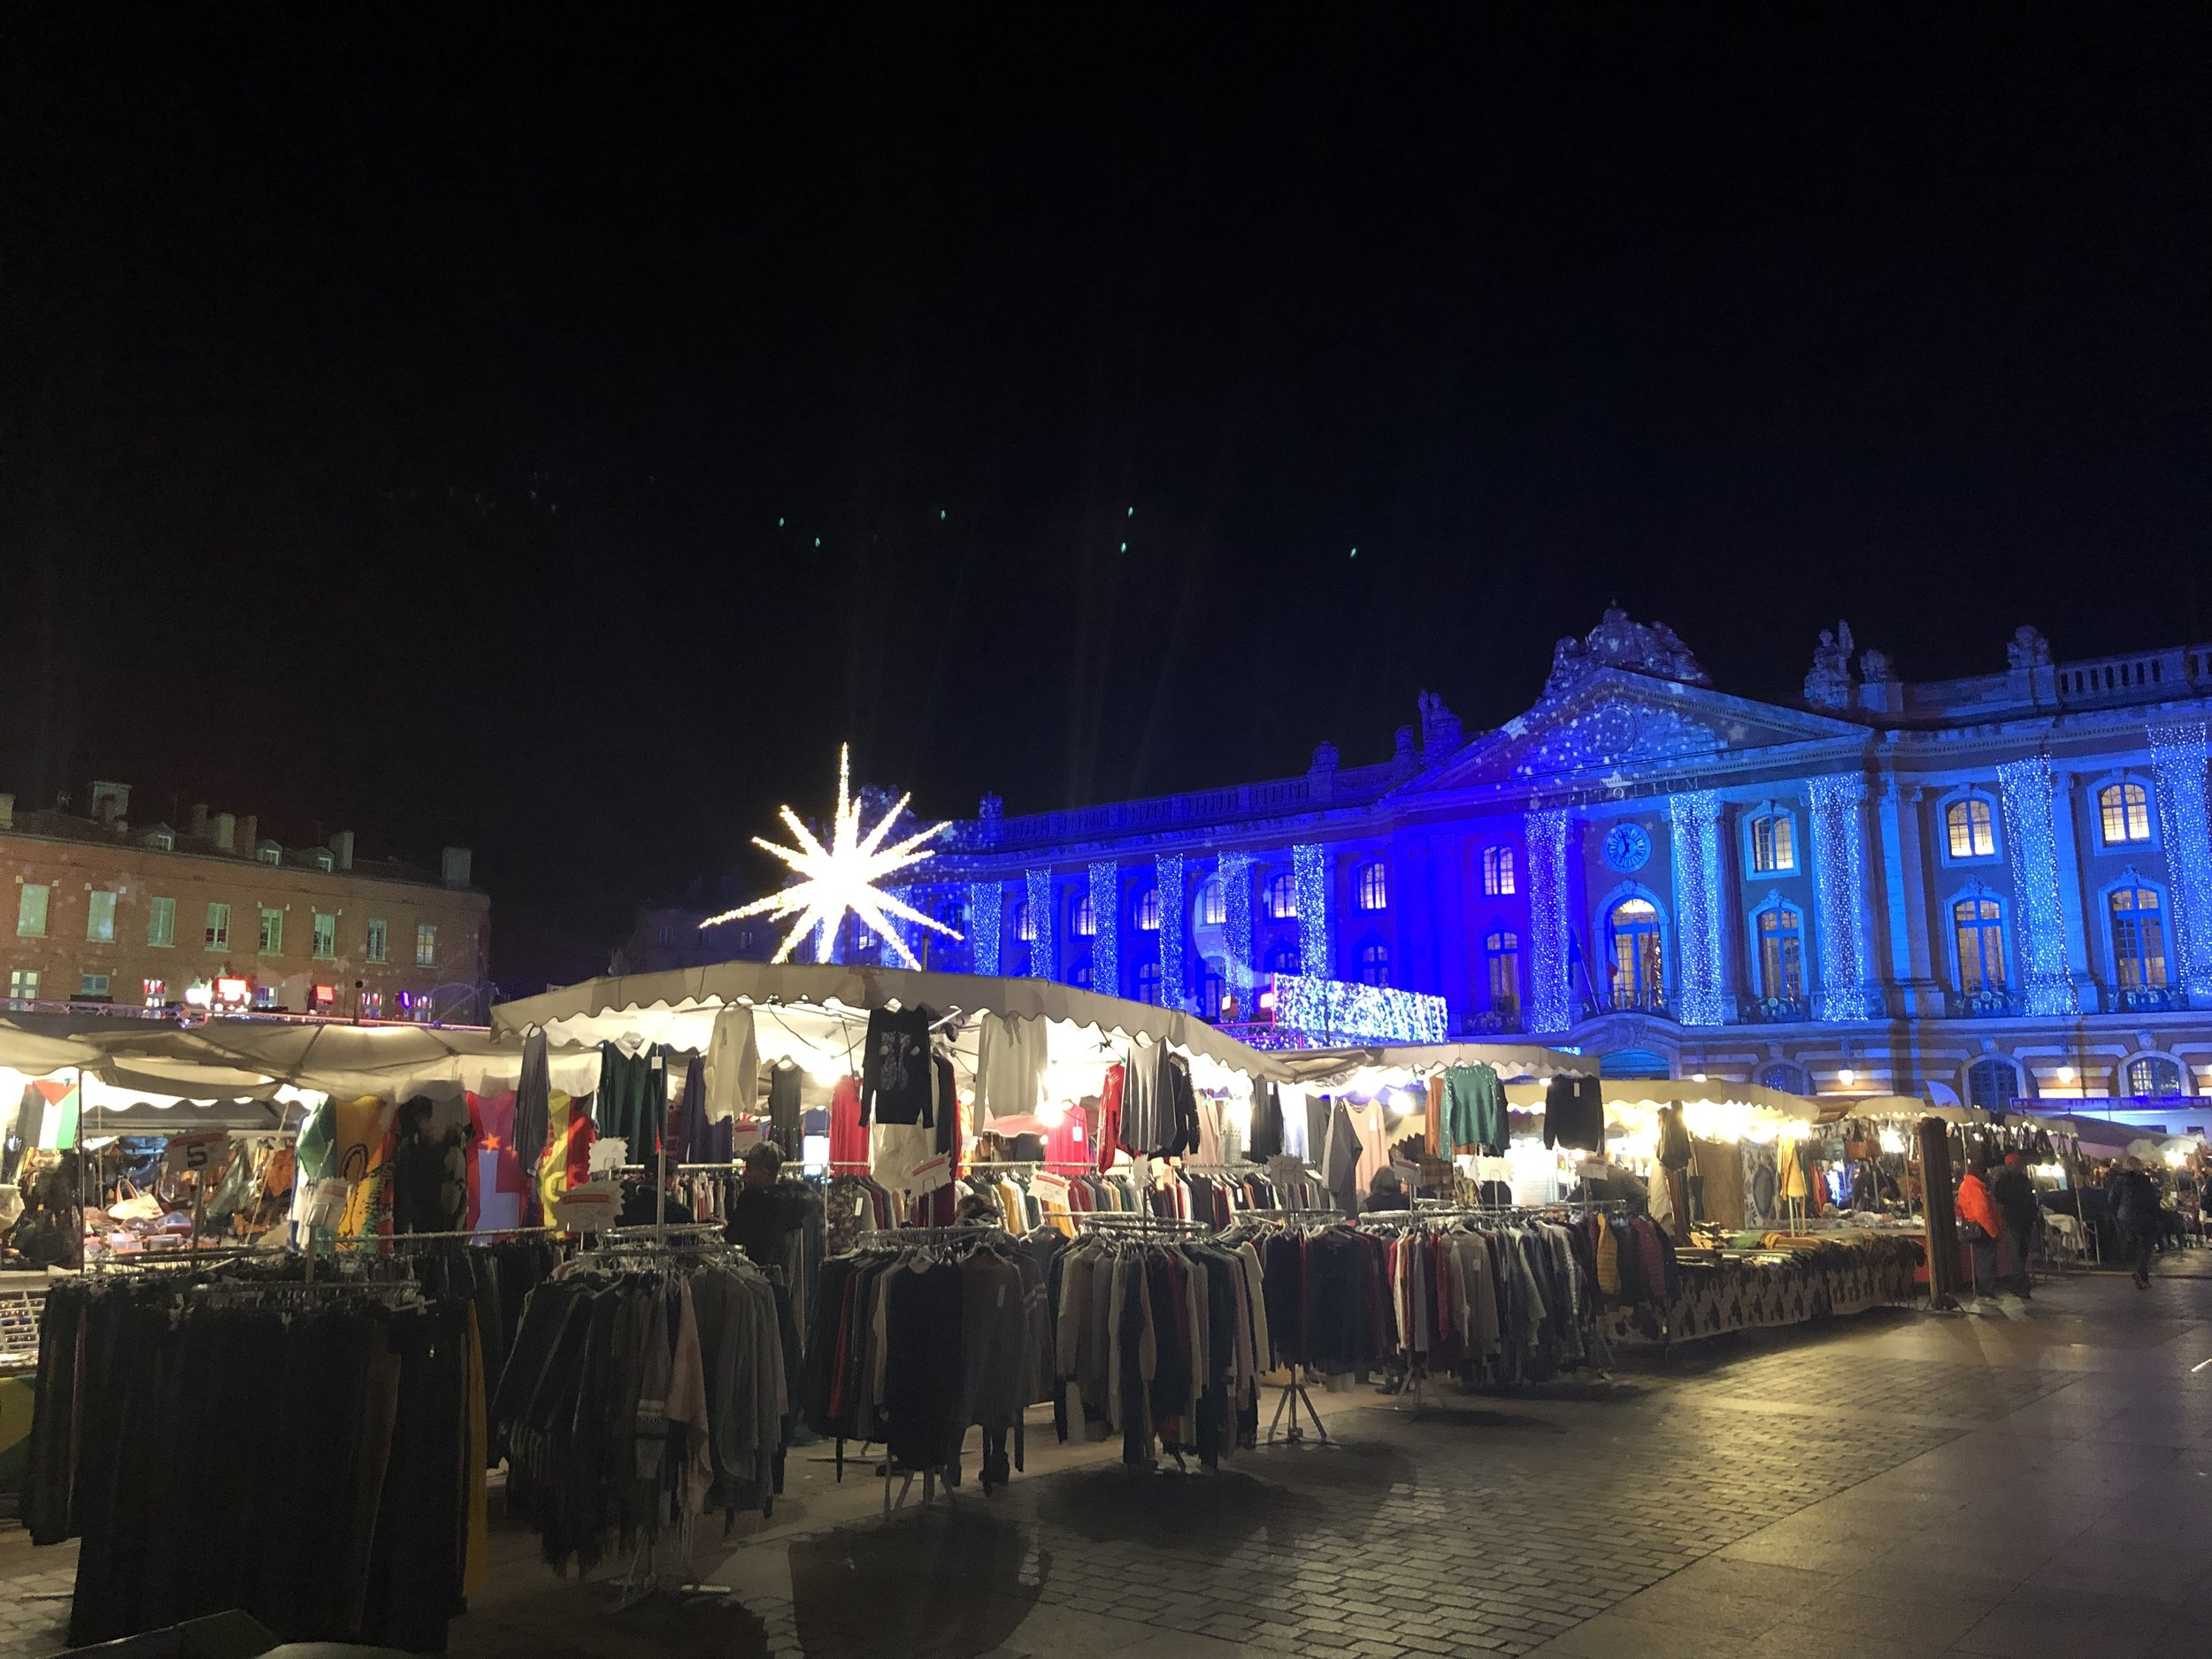 The Christmas market outside the city hall, all lit up for the holidays.